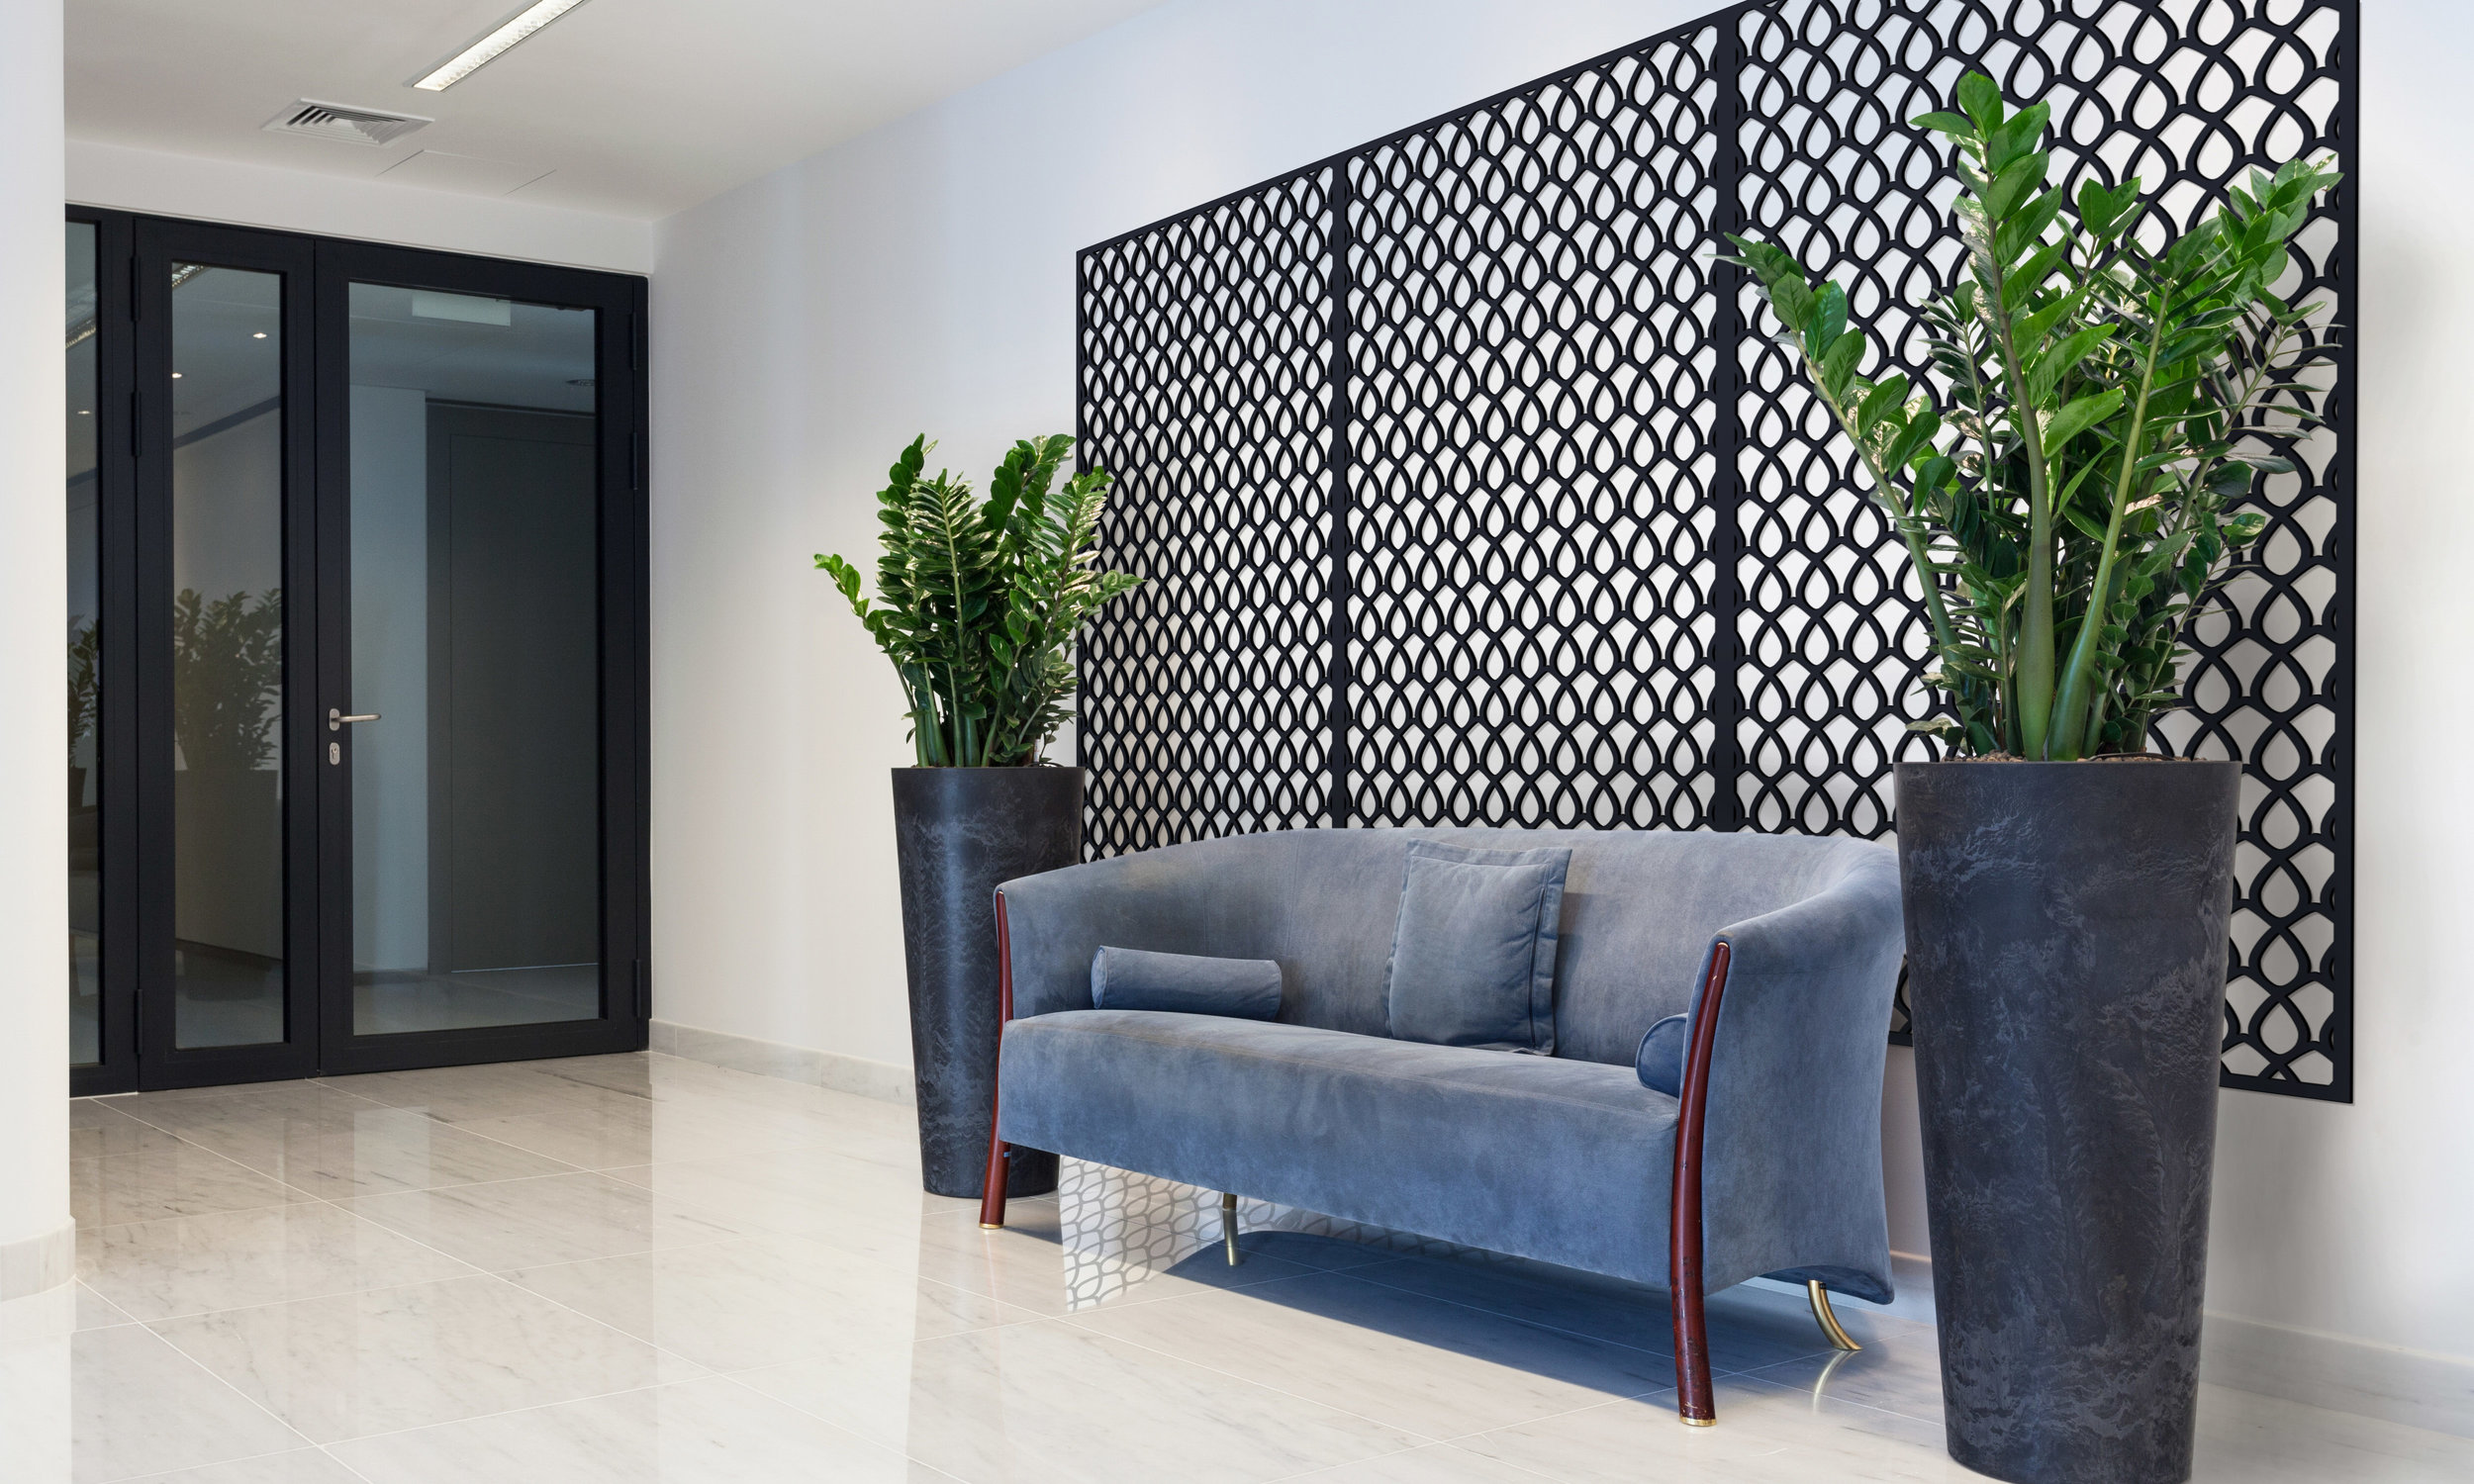 Installation Rendering B   Woven Wire decorative office wall panel - painted